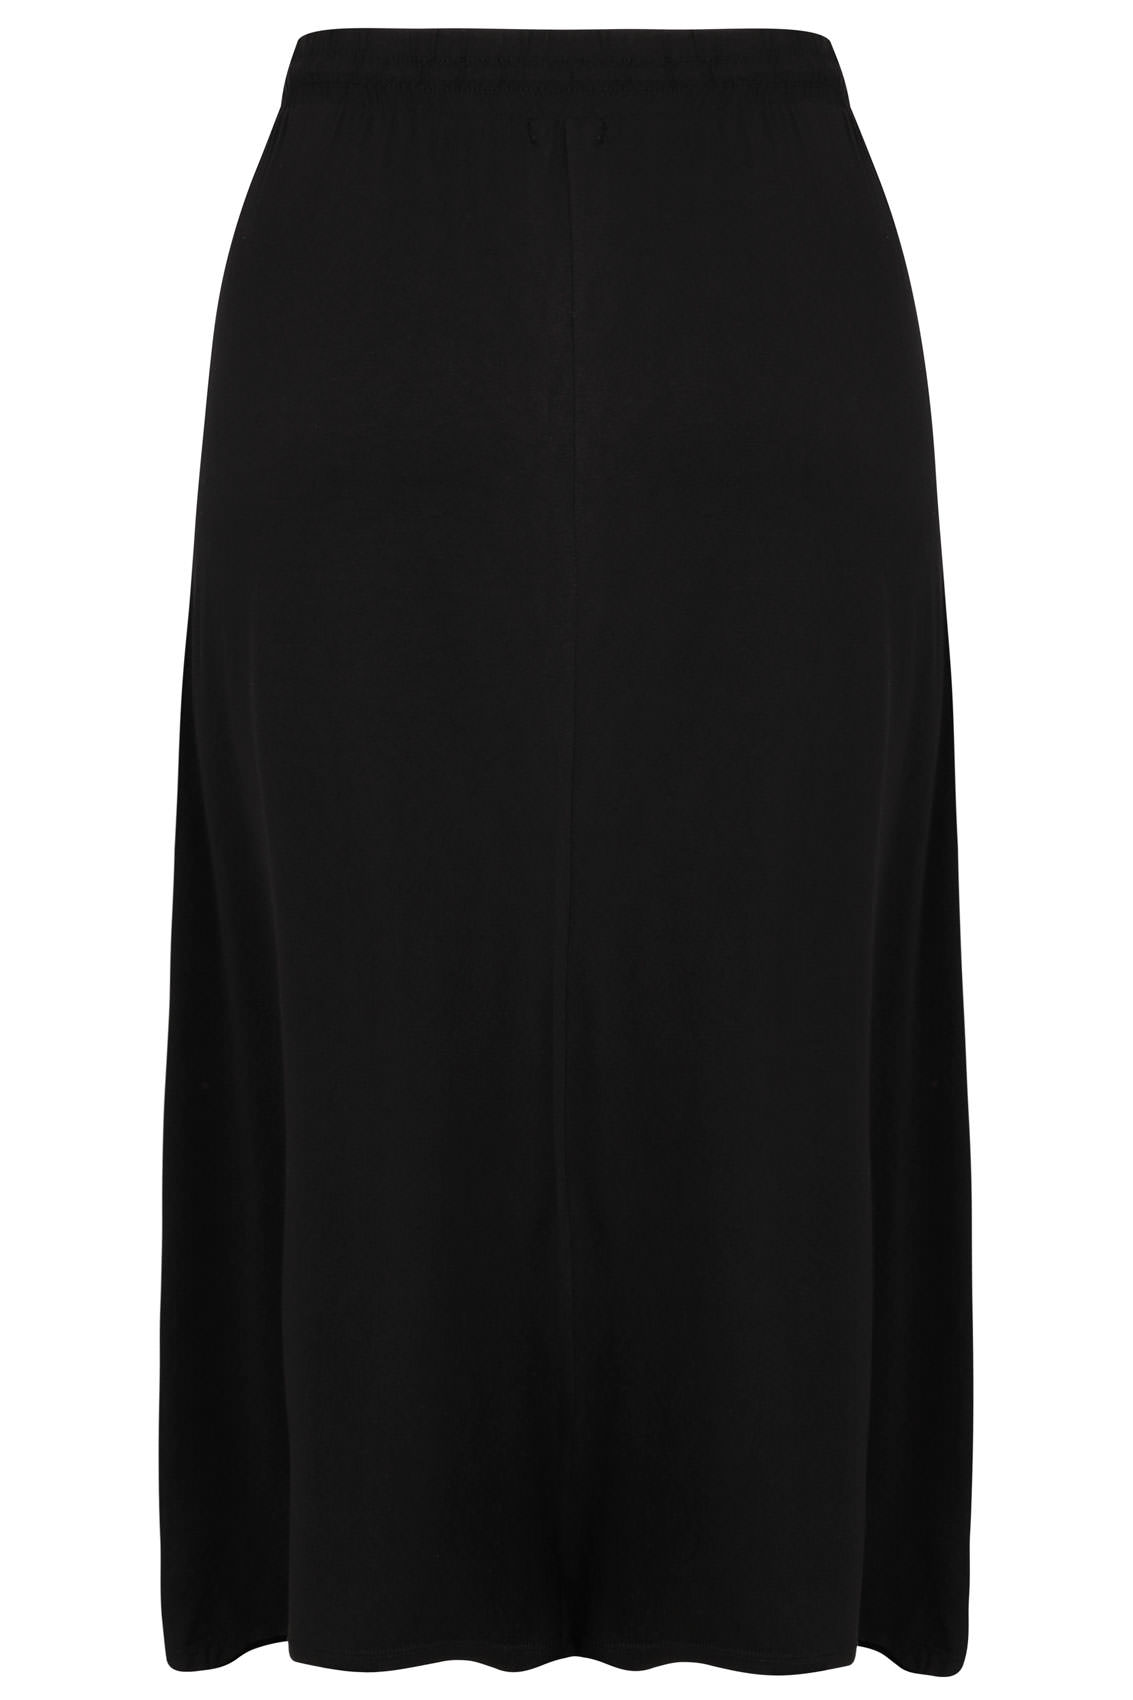 black jersey maxi skirt with elasticated draw string waist